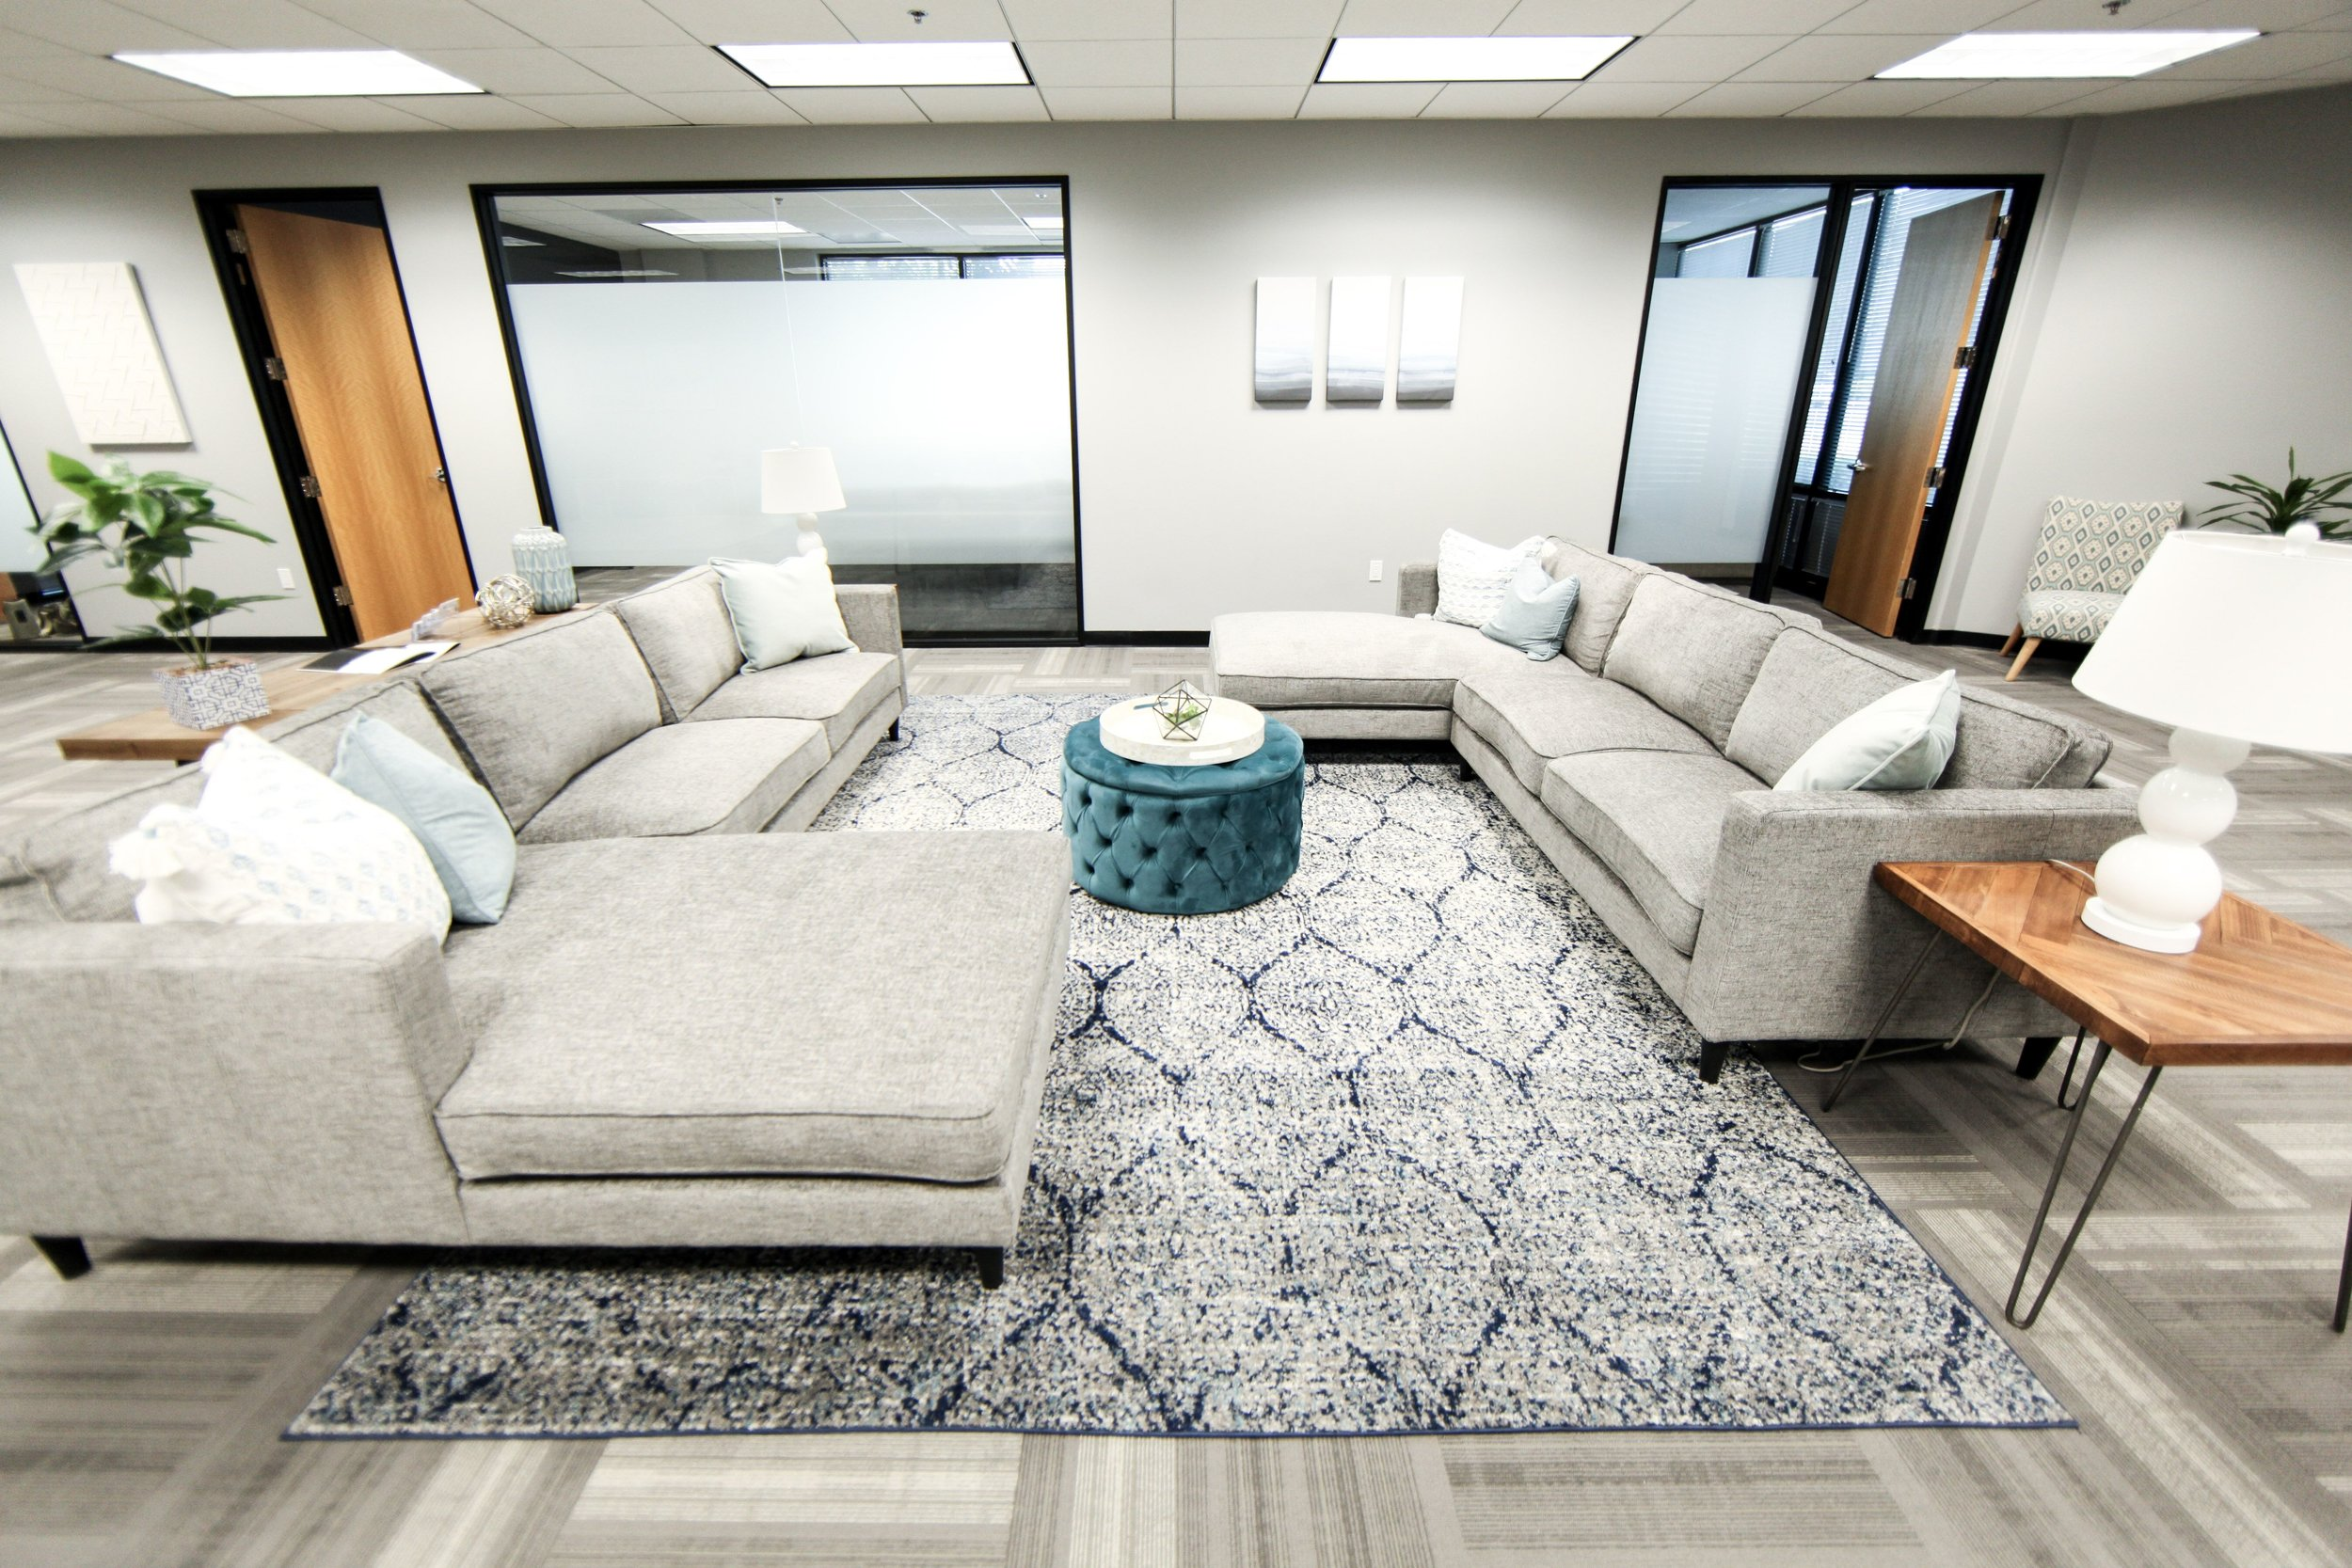 Treatment Room for Mental Health Counseling